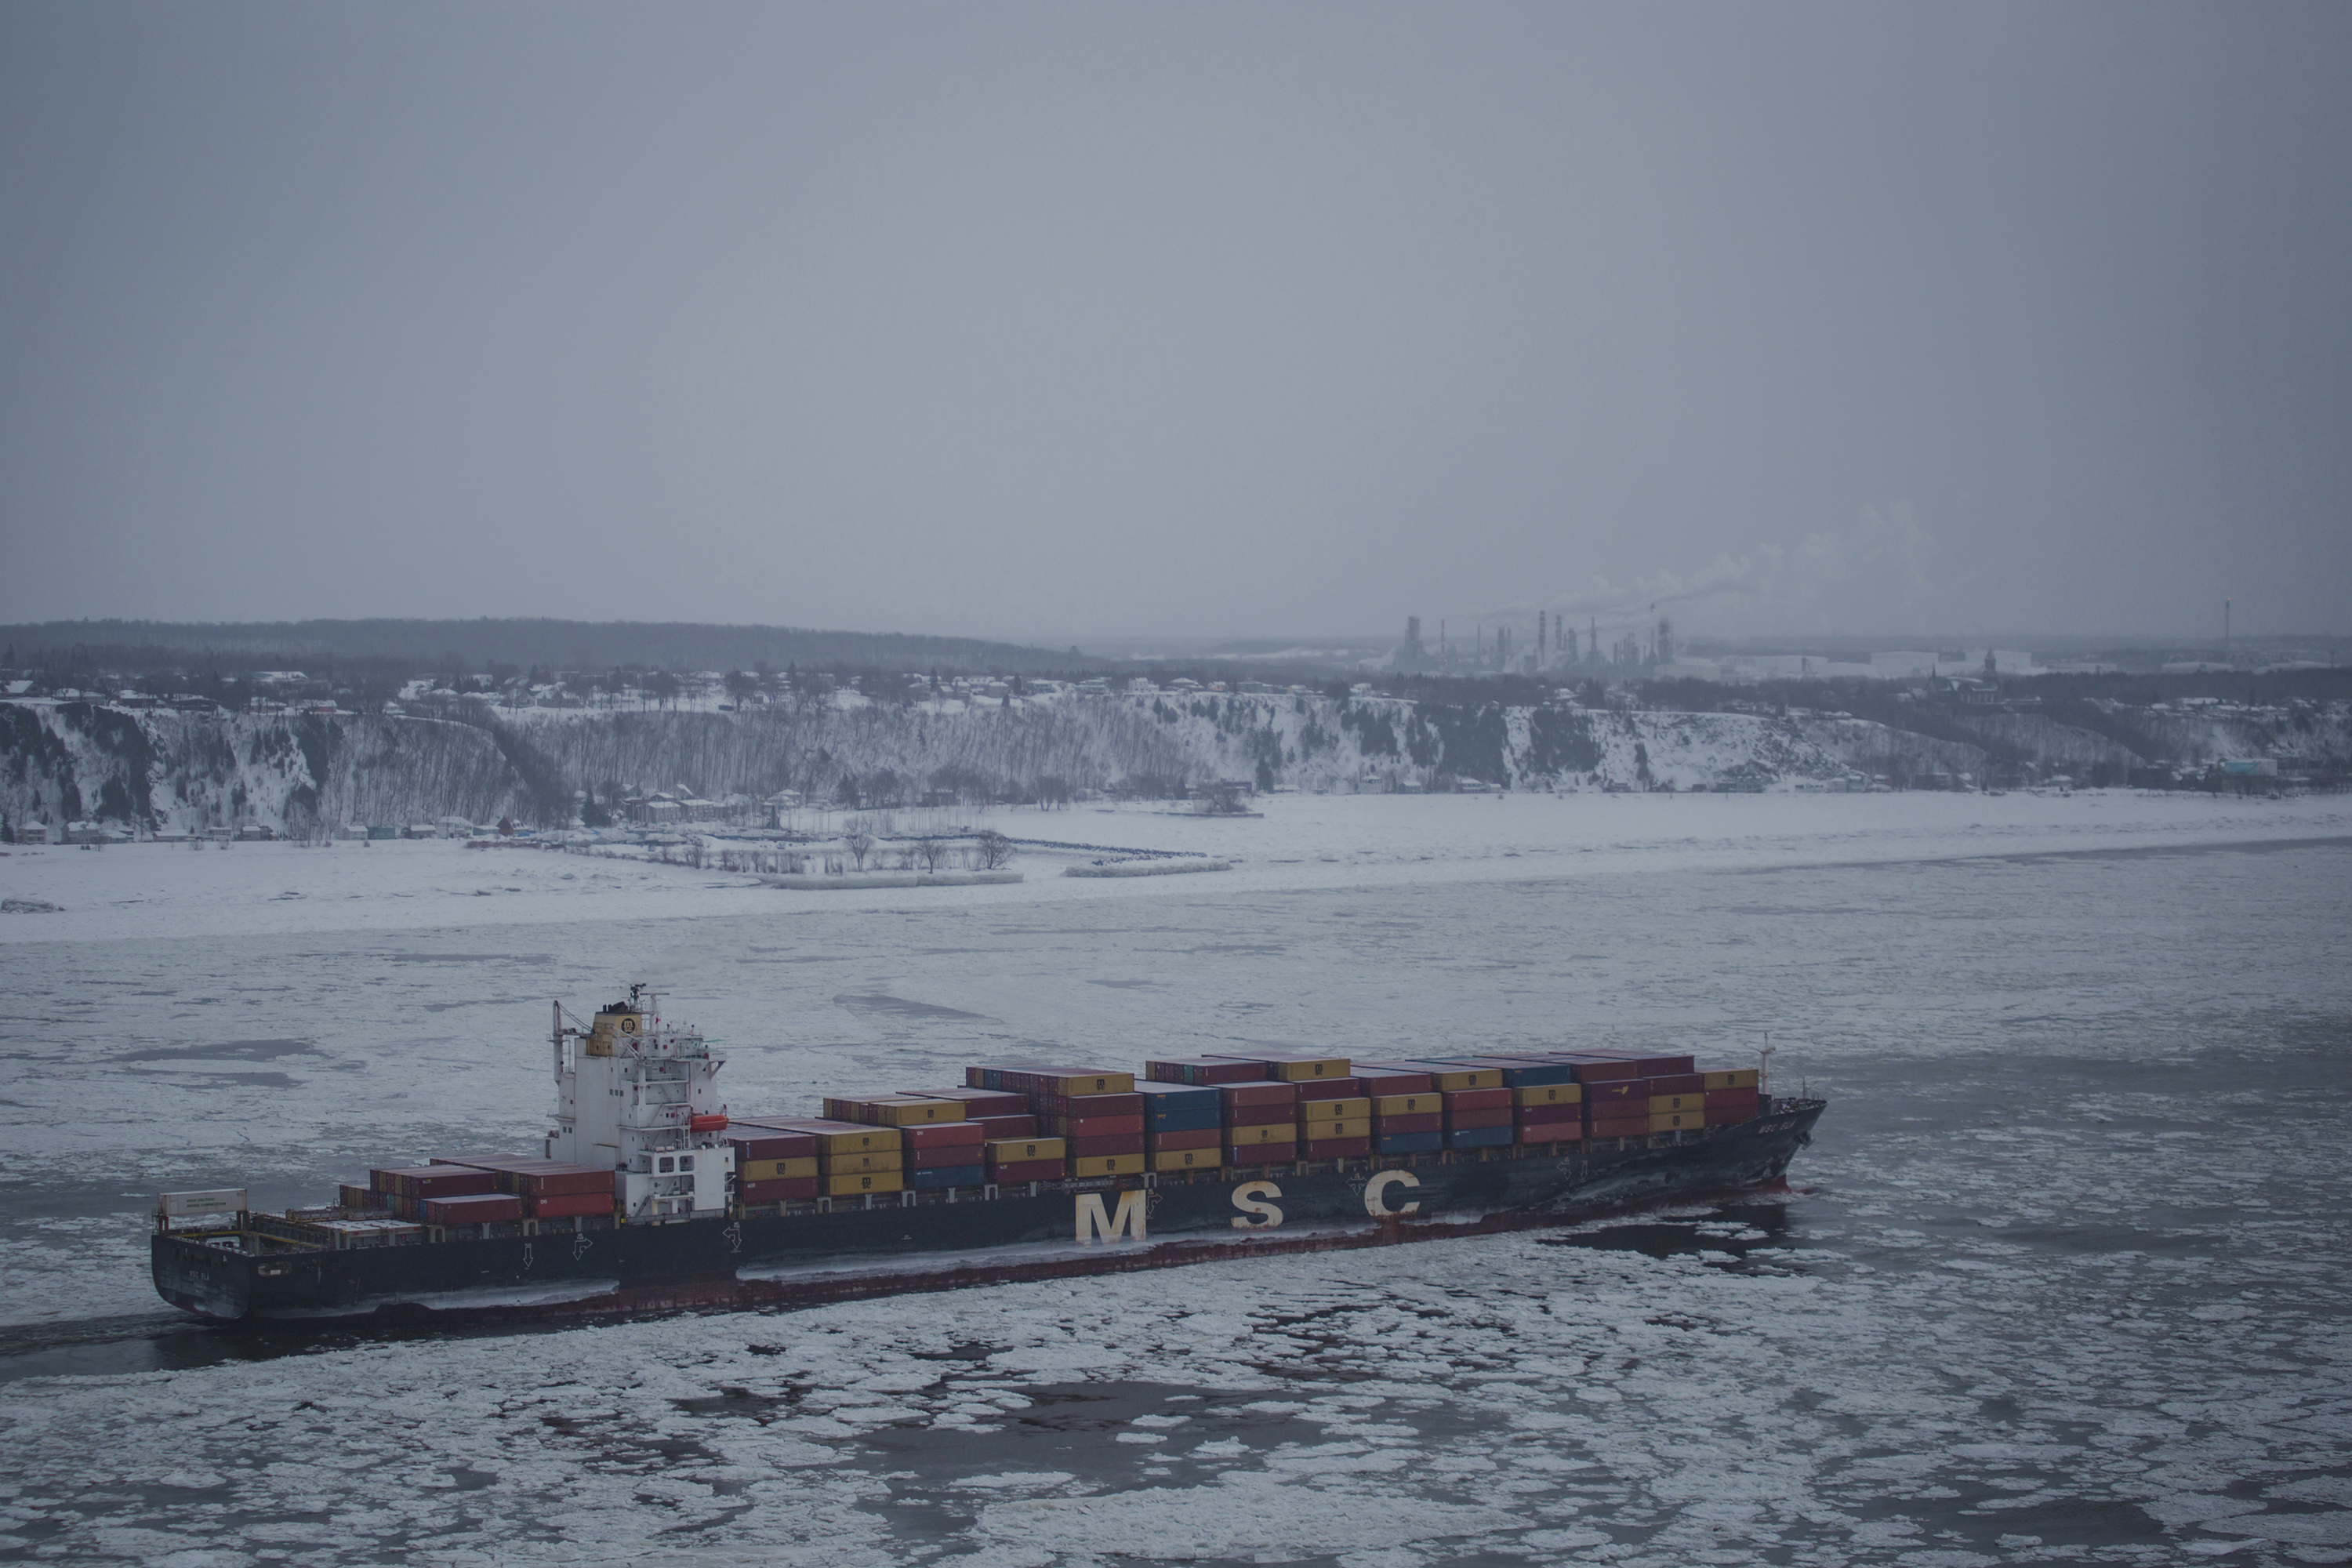 jp-valery-jpvalery-photographer-down-the-river-st-lawrence-quebec-1011